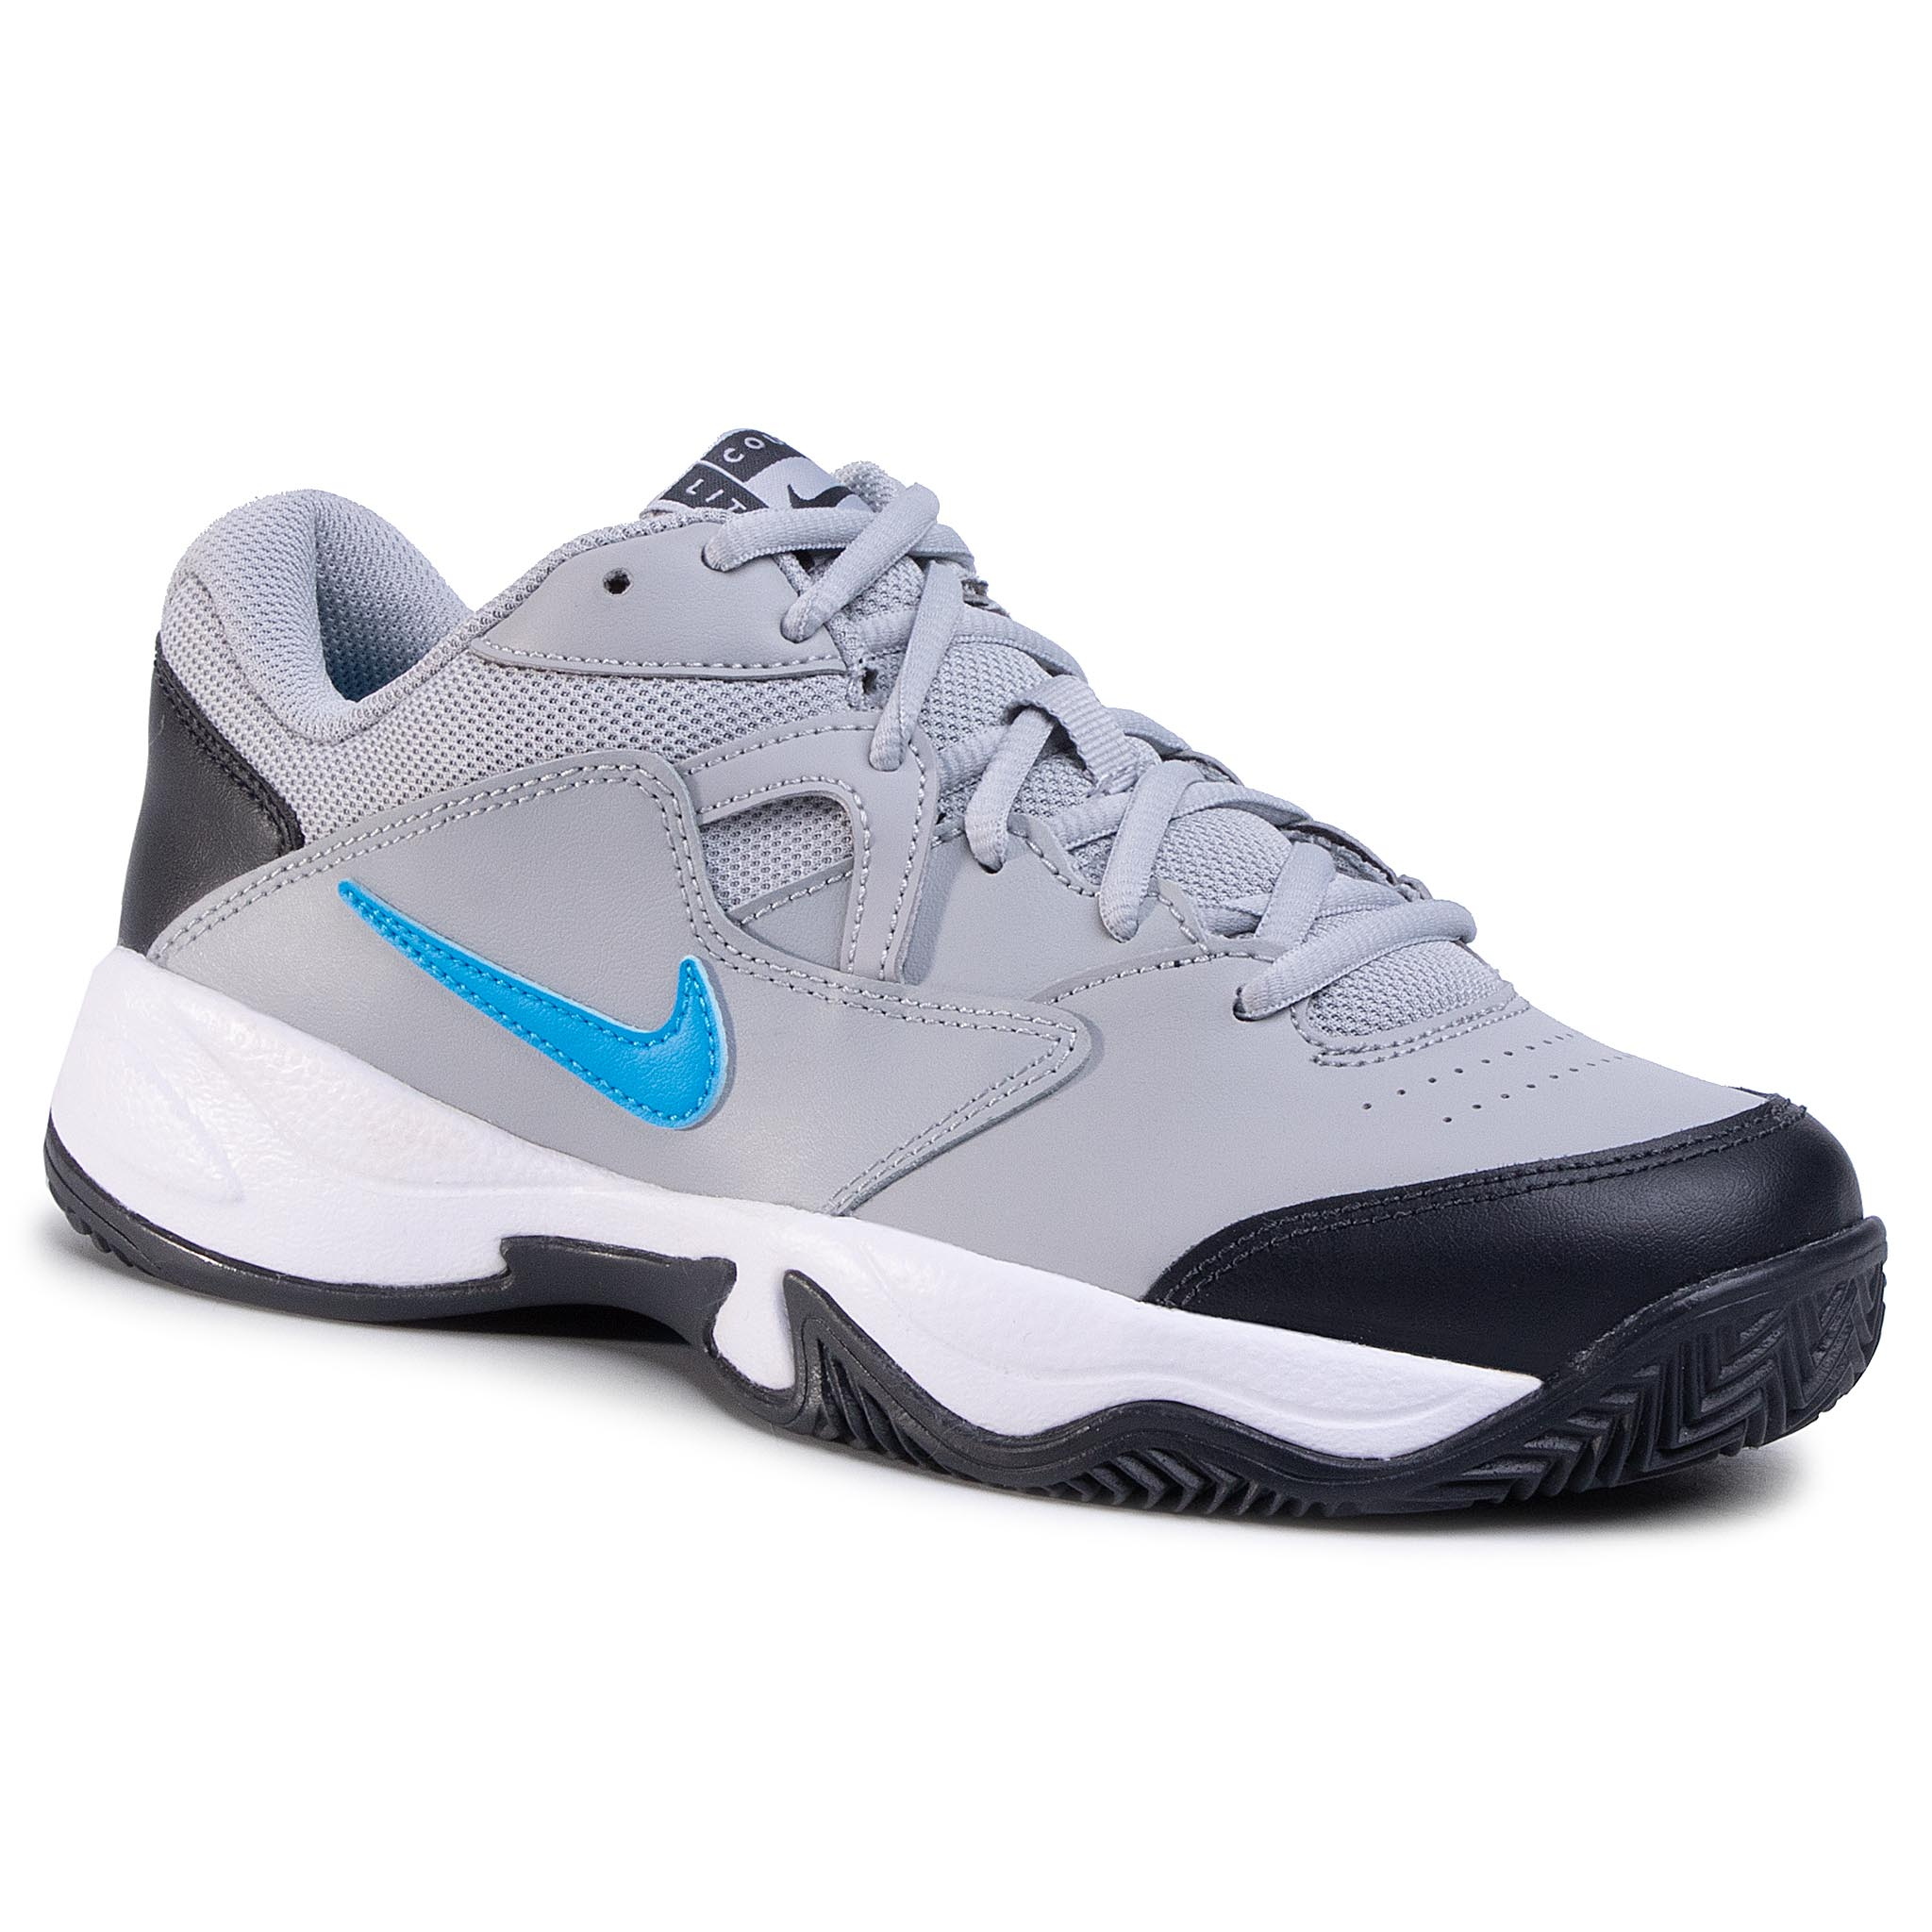 Pantofi Nike - Court Lite 2 Cly Cd0392 011 Lt Smoke Grey/Blue Hero imagine epantofi.ro 2021